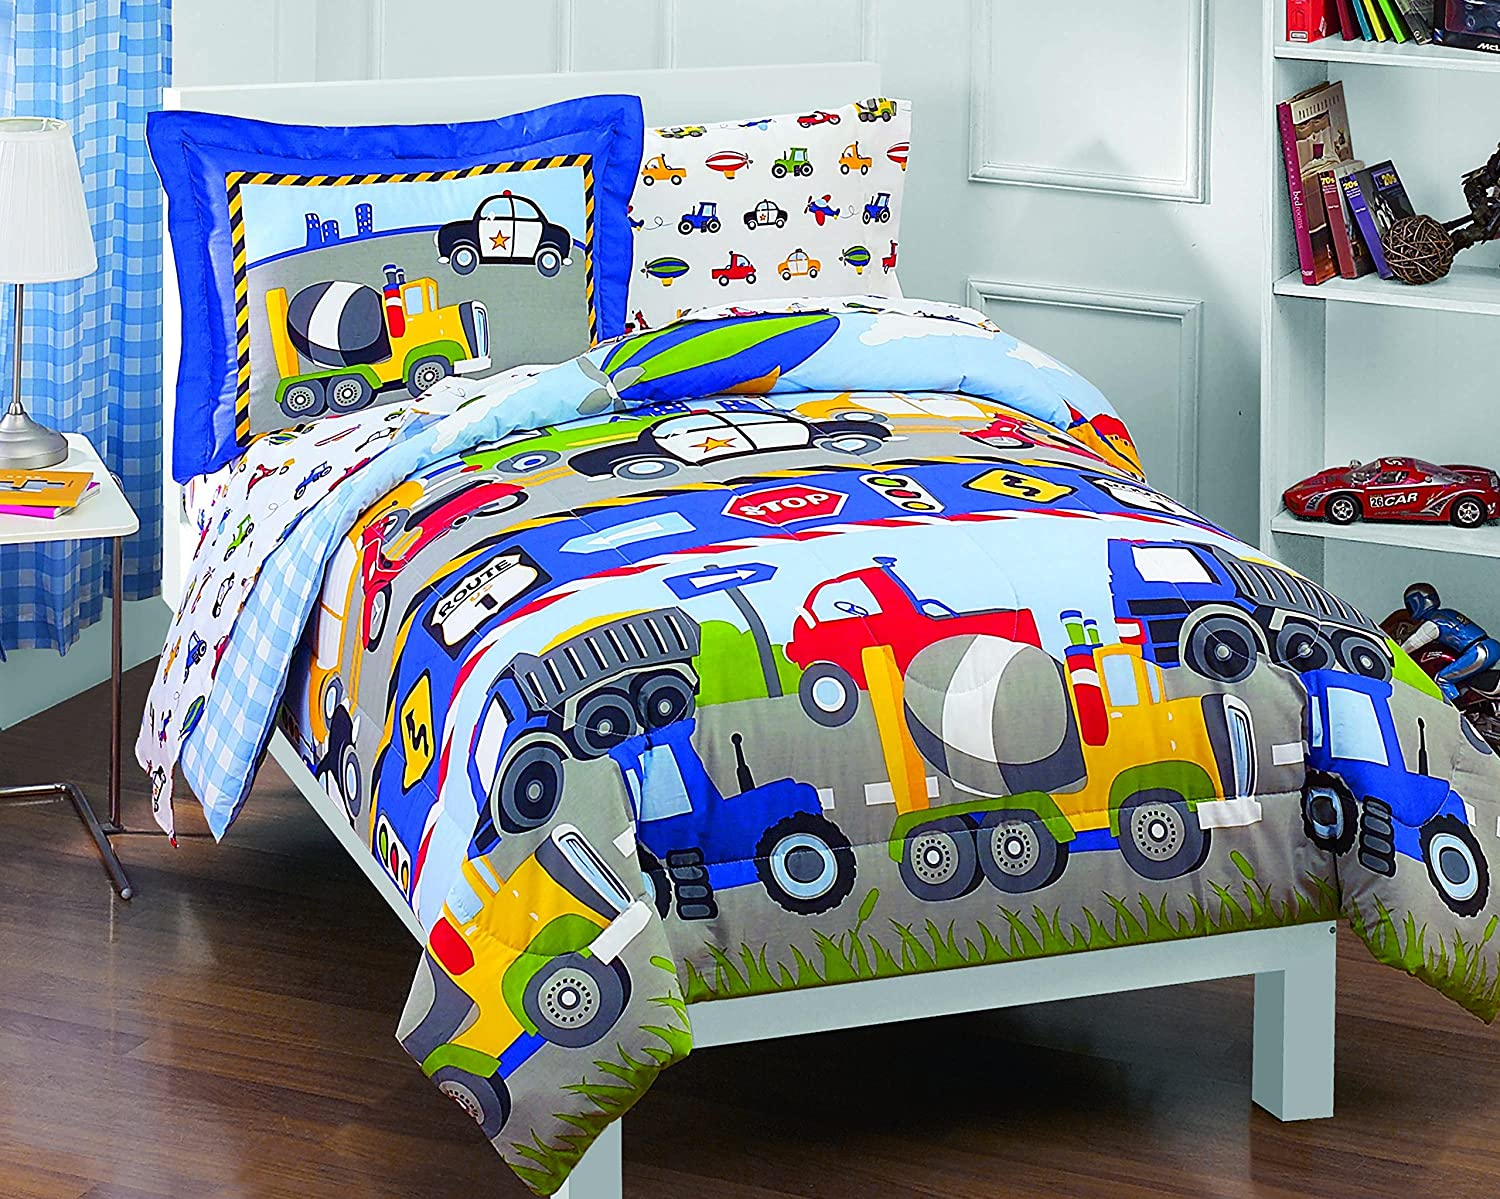 Charming Amazon.com: Dream Factory Trucks Tractors Cars Boys 5 Piece Comforter Sheet  Set, Blue Red, Twin: Home U0026 Kitchen